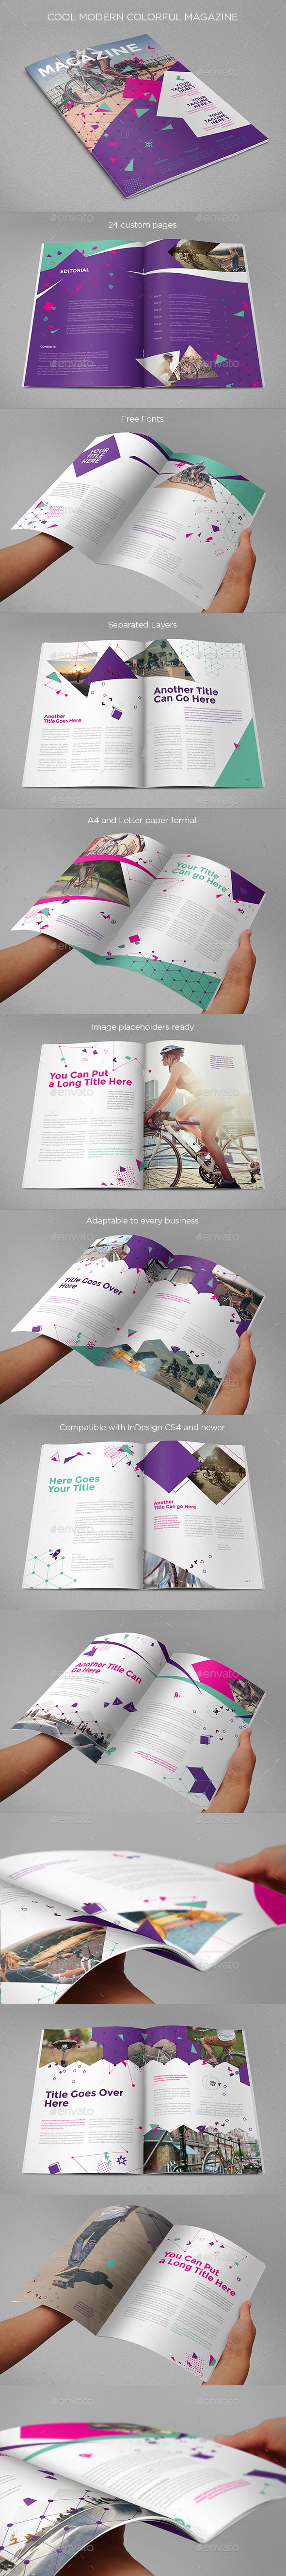 Amazing 100 Greatest Resume Words Huge 101 Modern Resume Samples Shaped 1st Birthday Invitations Templates 2013 Resume Writing Trends Youthful 2014 Calendar Template Free Bright2014 Monthly Calendar Template 25  Best Ideas About Magazine Template On Pinterest | Magazine ..